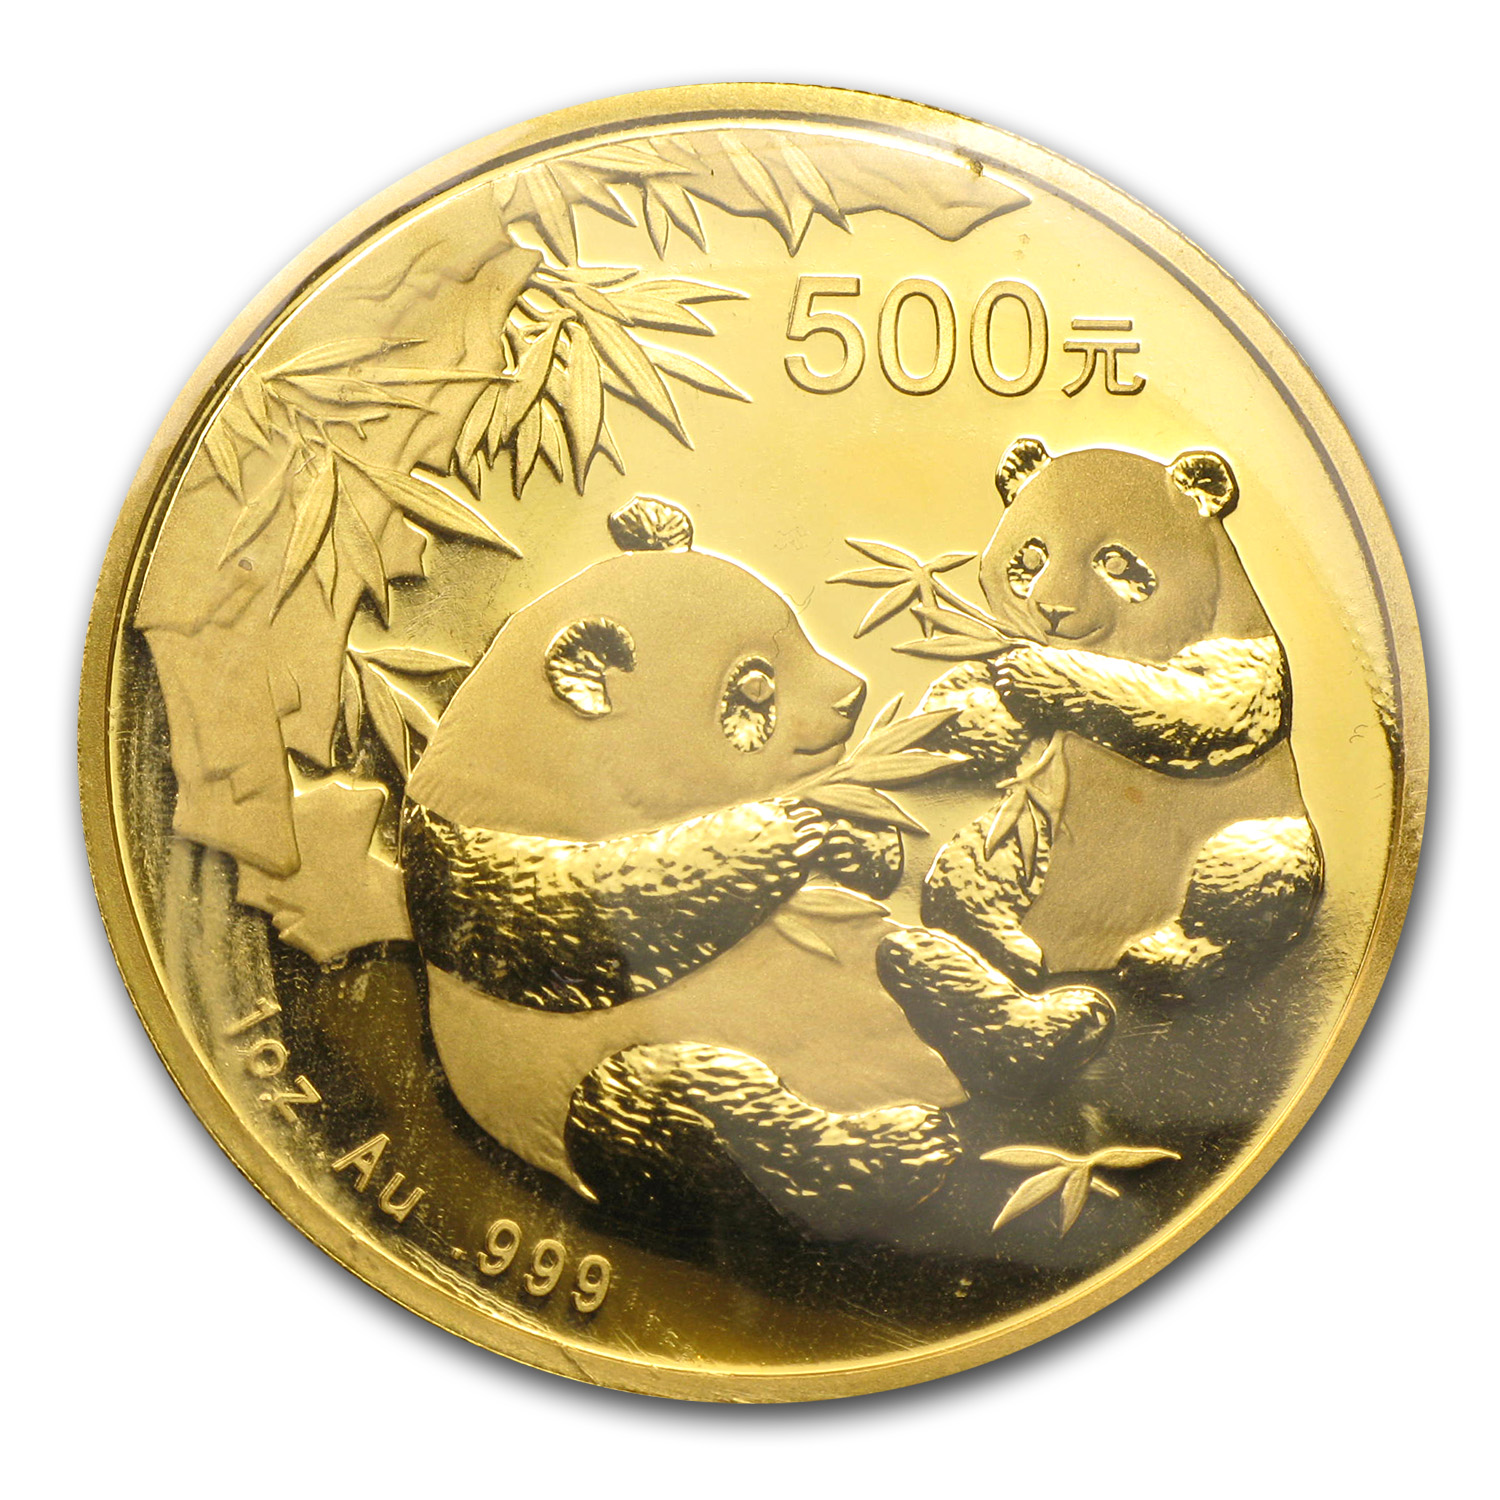 2006 1 oz Gold Chinese Panda BU (Sealed)